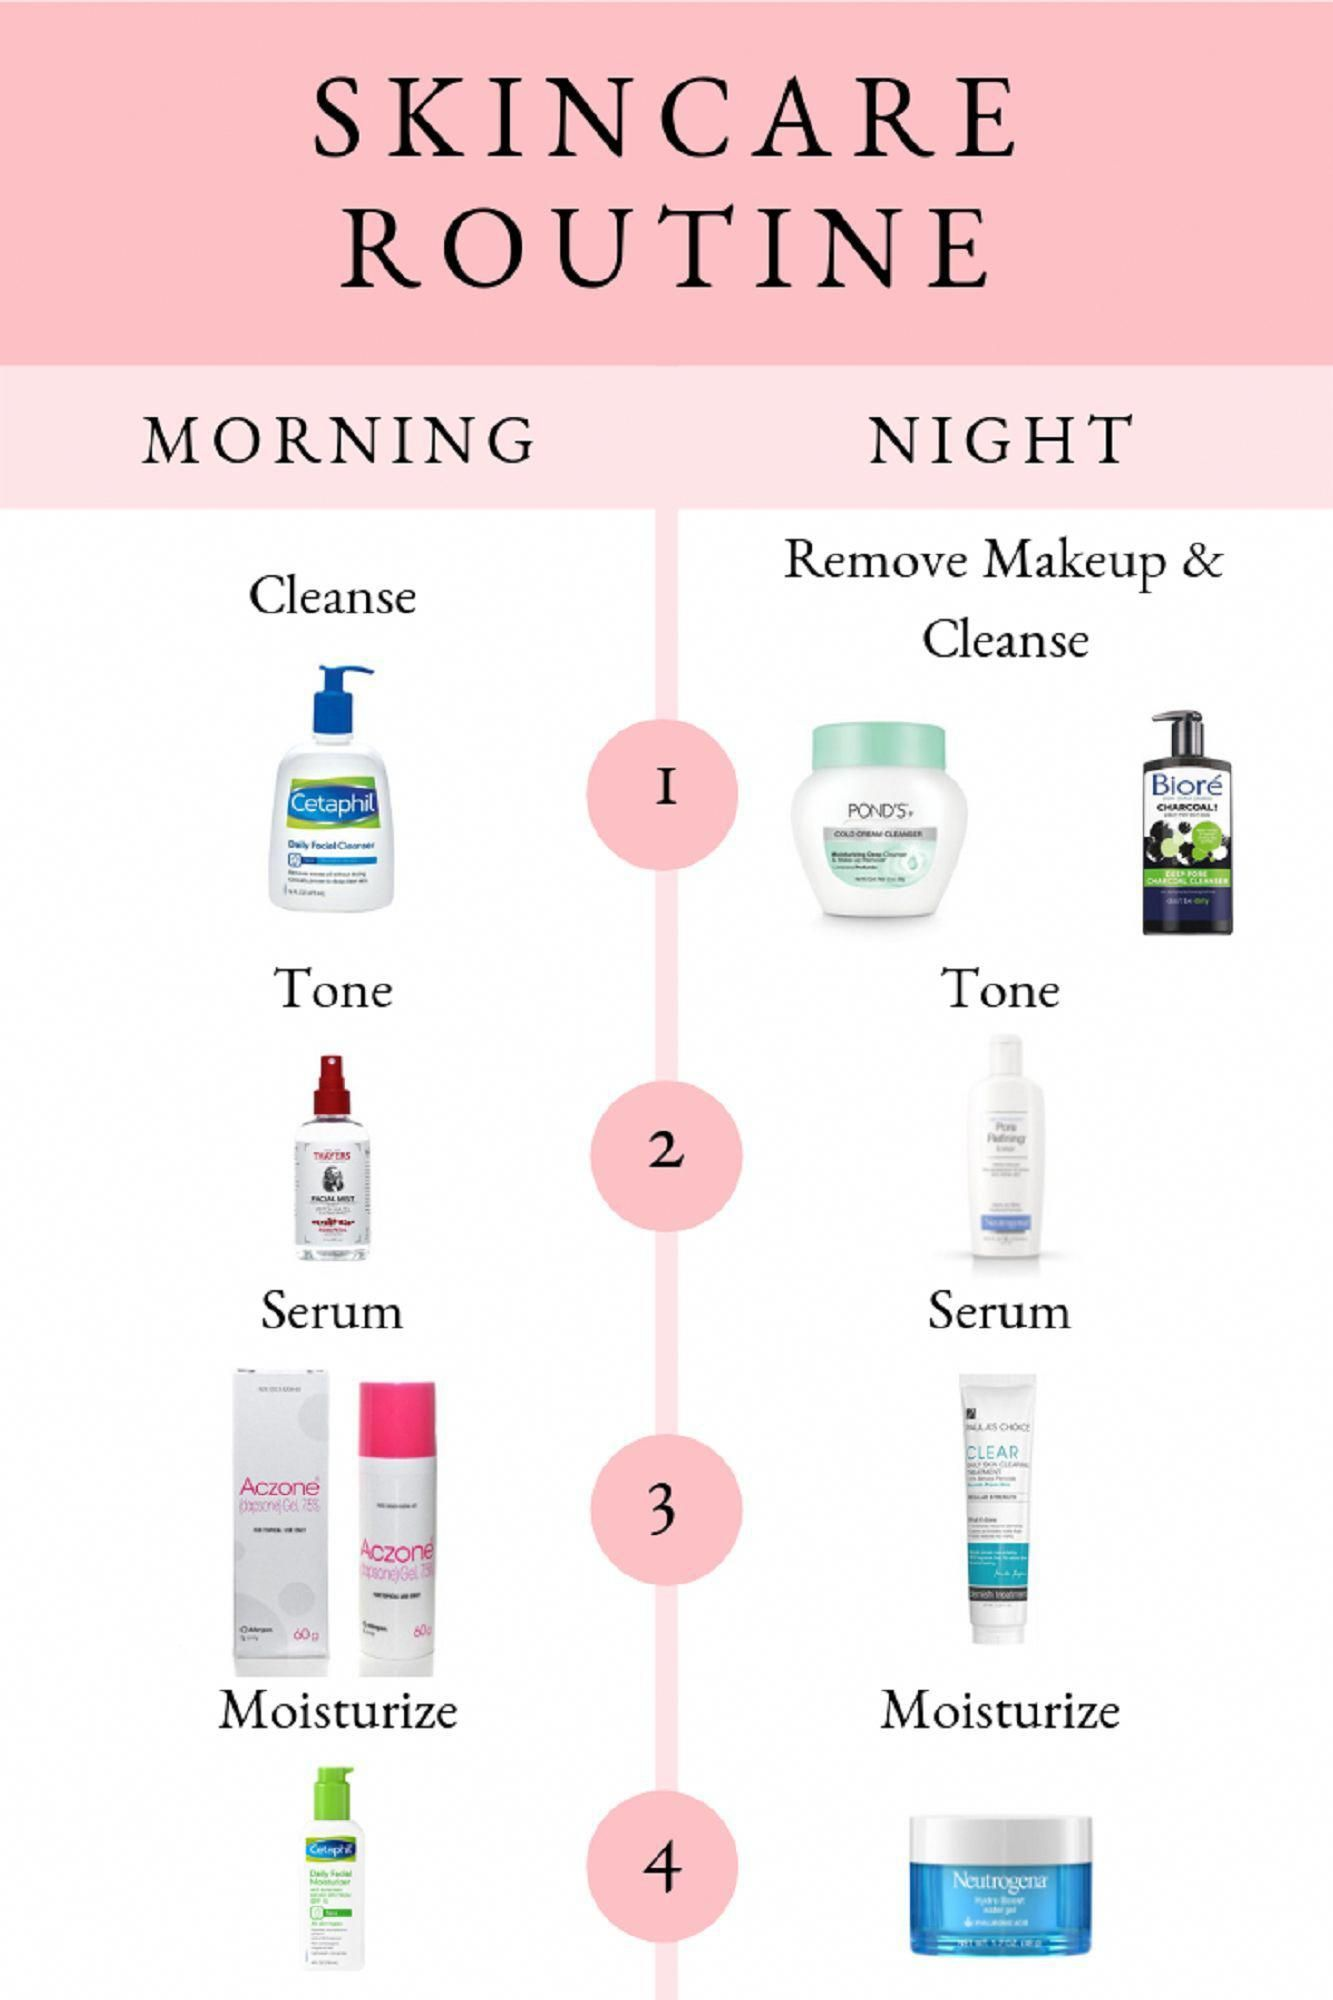 Just Click On The Link For More Information About Skincare Routine